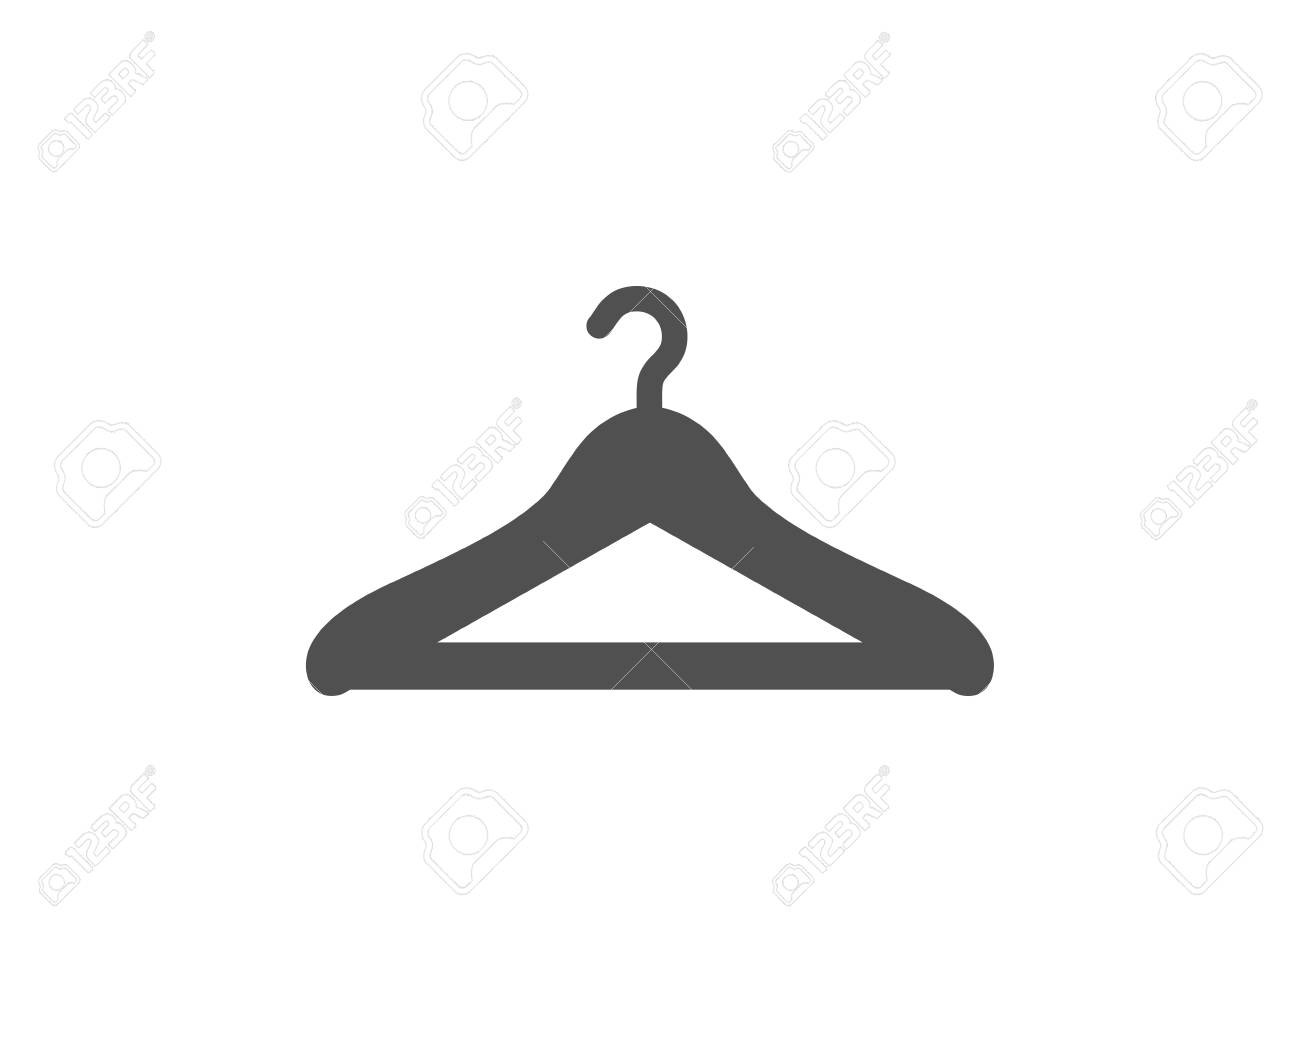 Cloakroom icon. Hanger wardrobe sign. Clothes service symbol. Quality design element. Classic style icon. Vector - 125986162